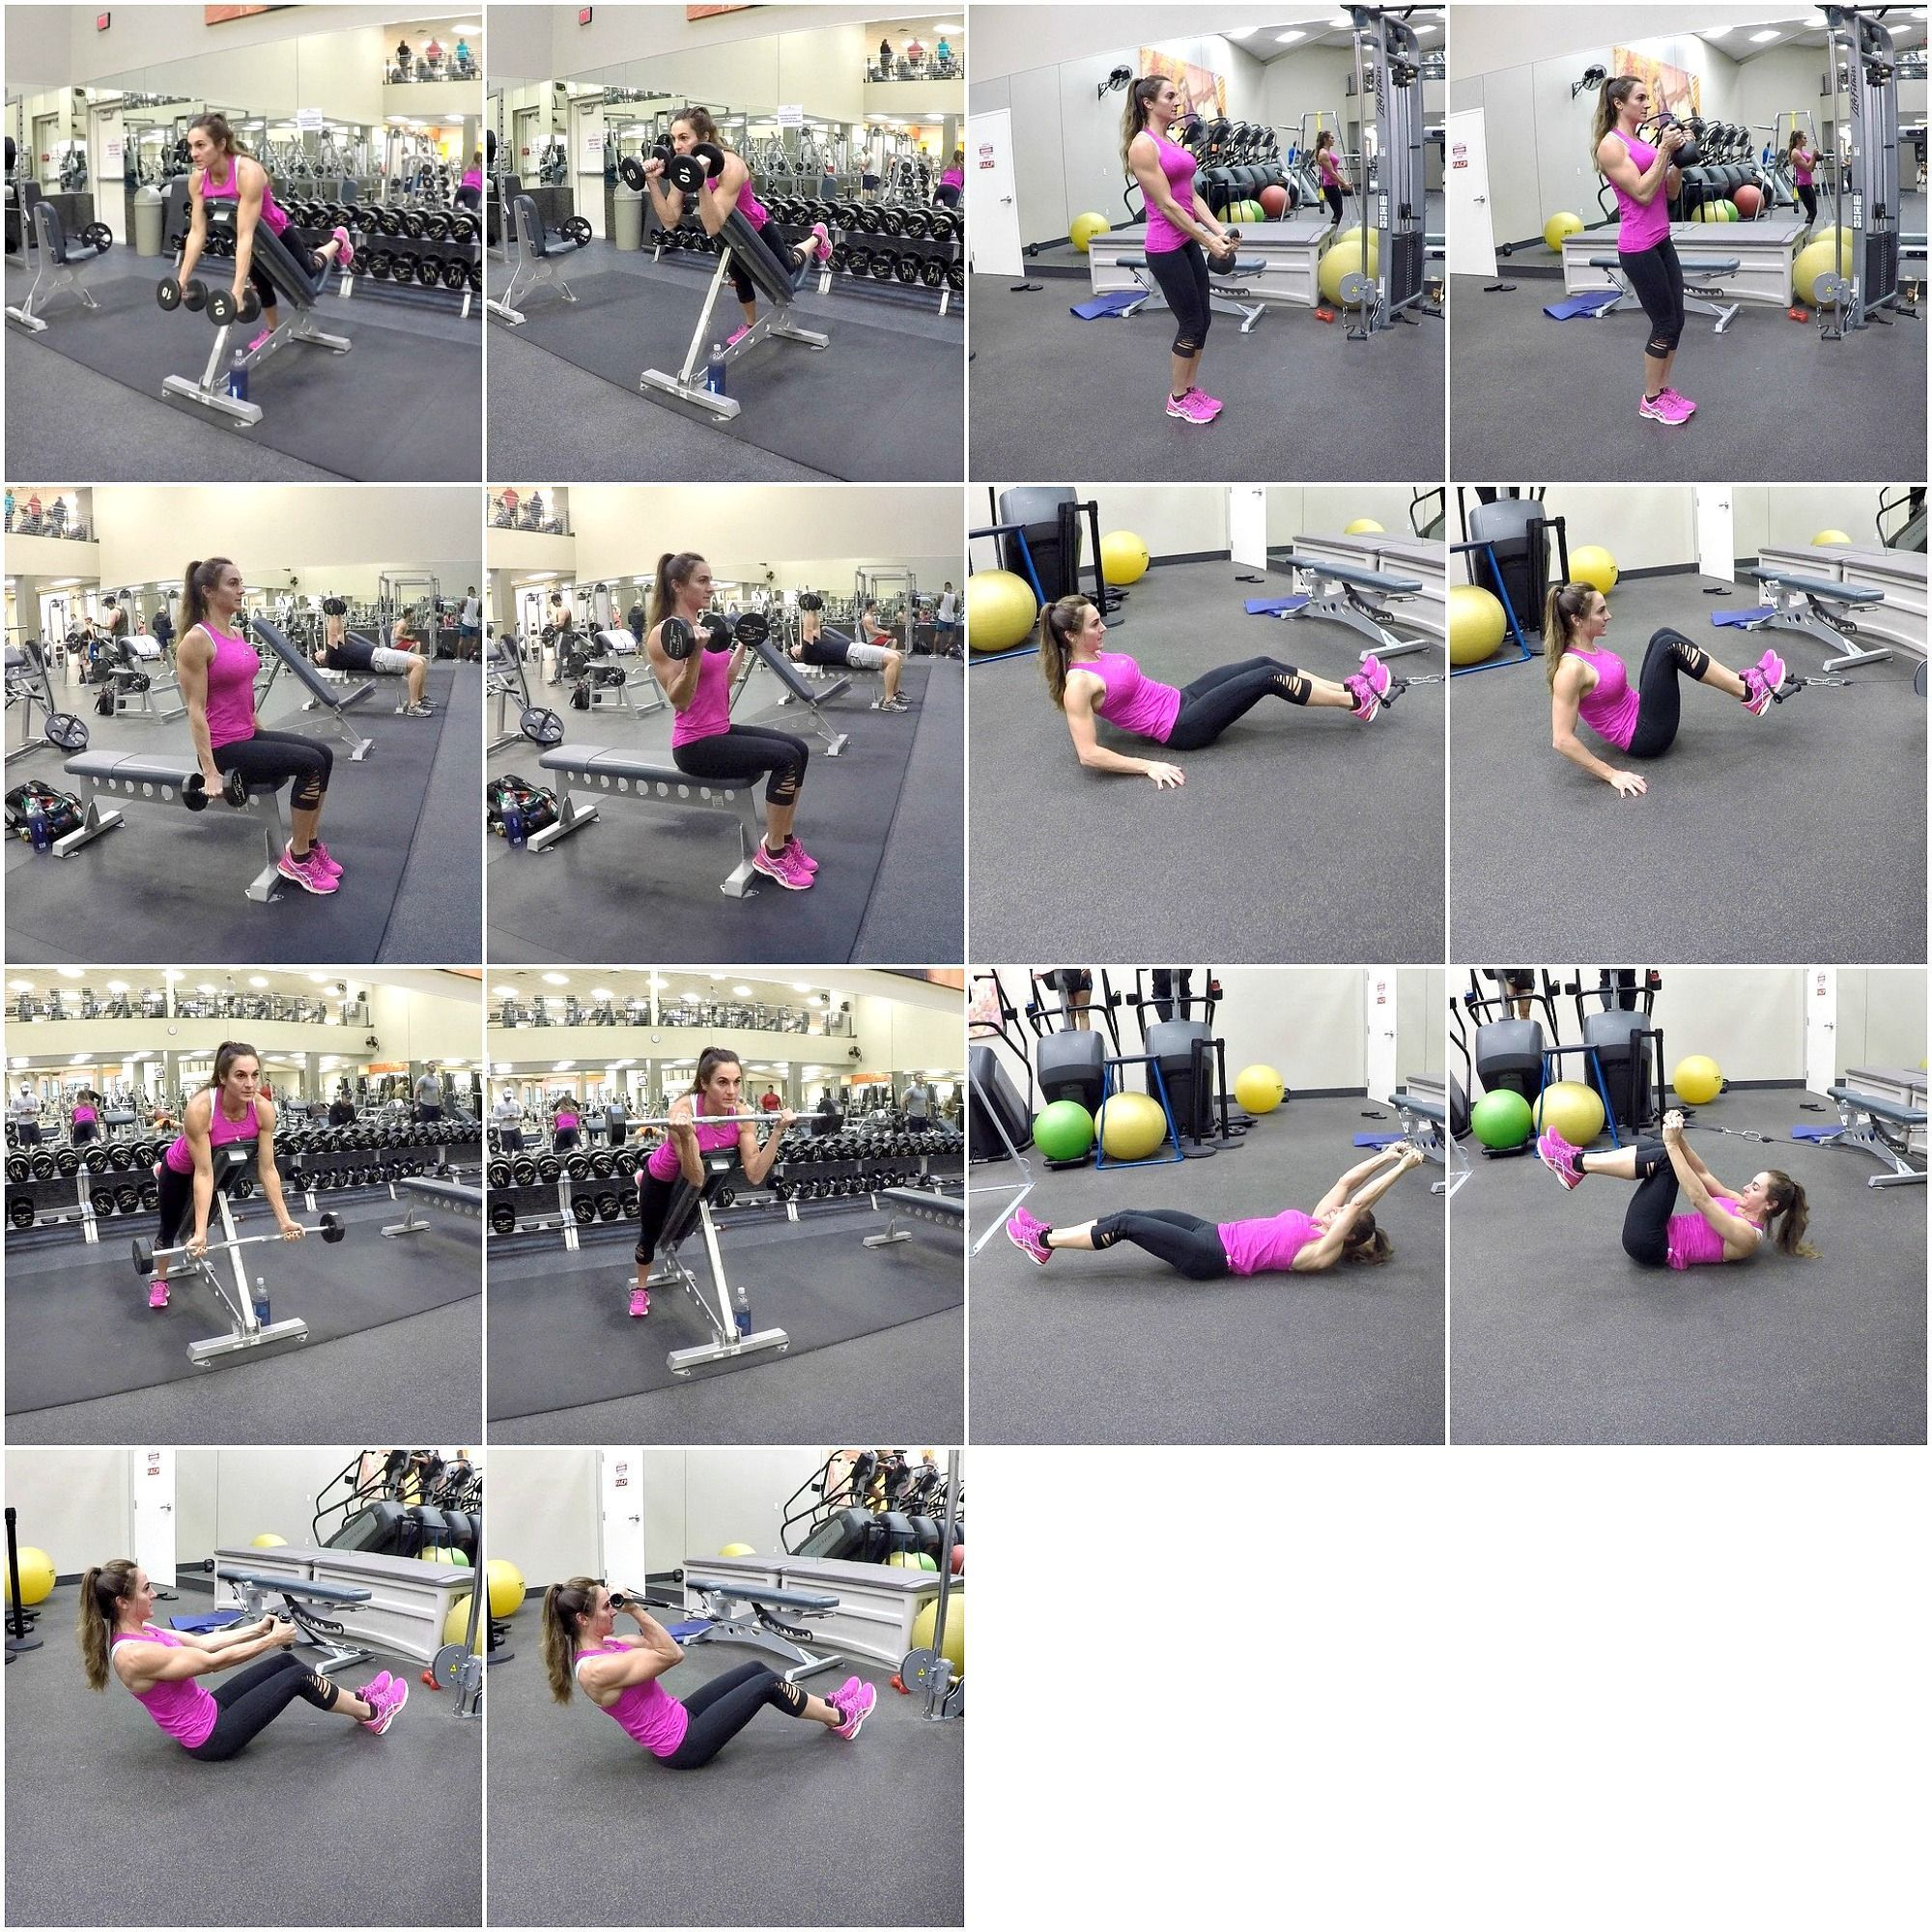 30 Day Fitness Challenge Day 5: Biceps a... - 30 Day Fitness Challenge Day 5: Biceps and Abs #Abs #B...